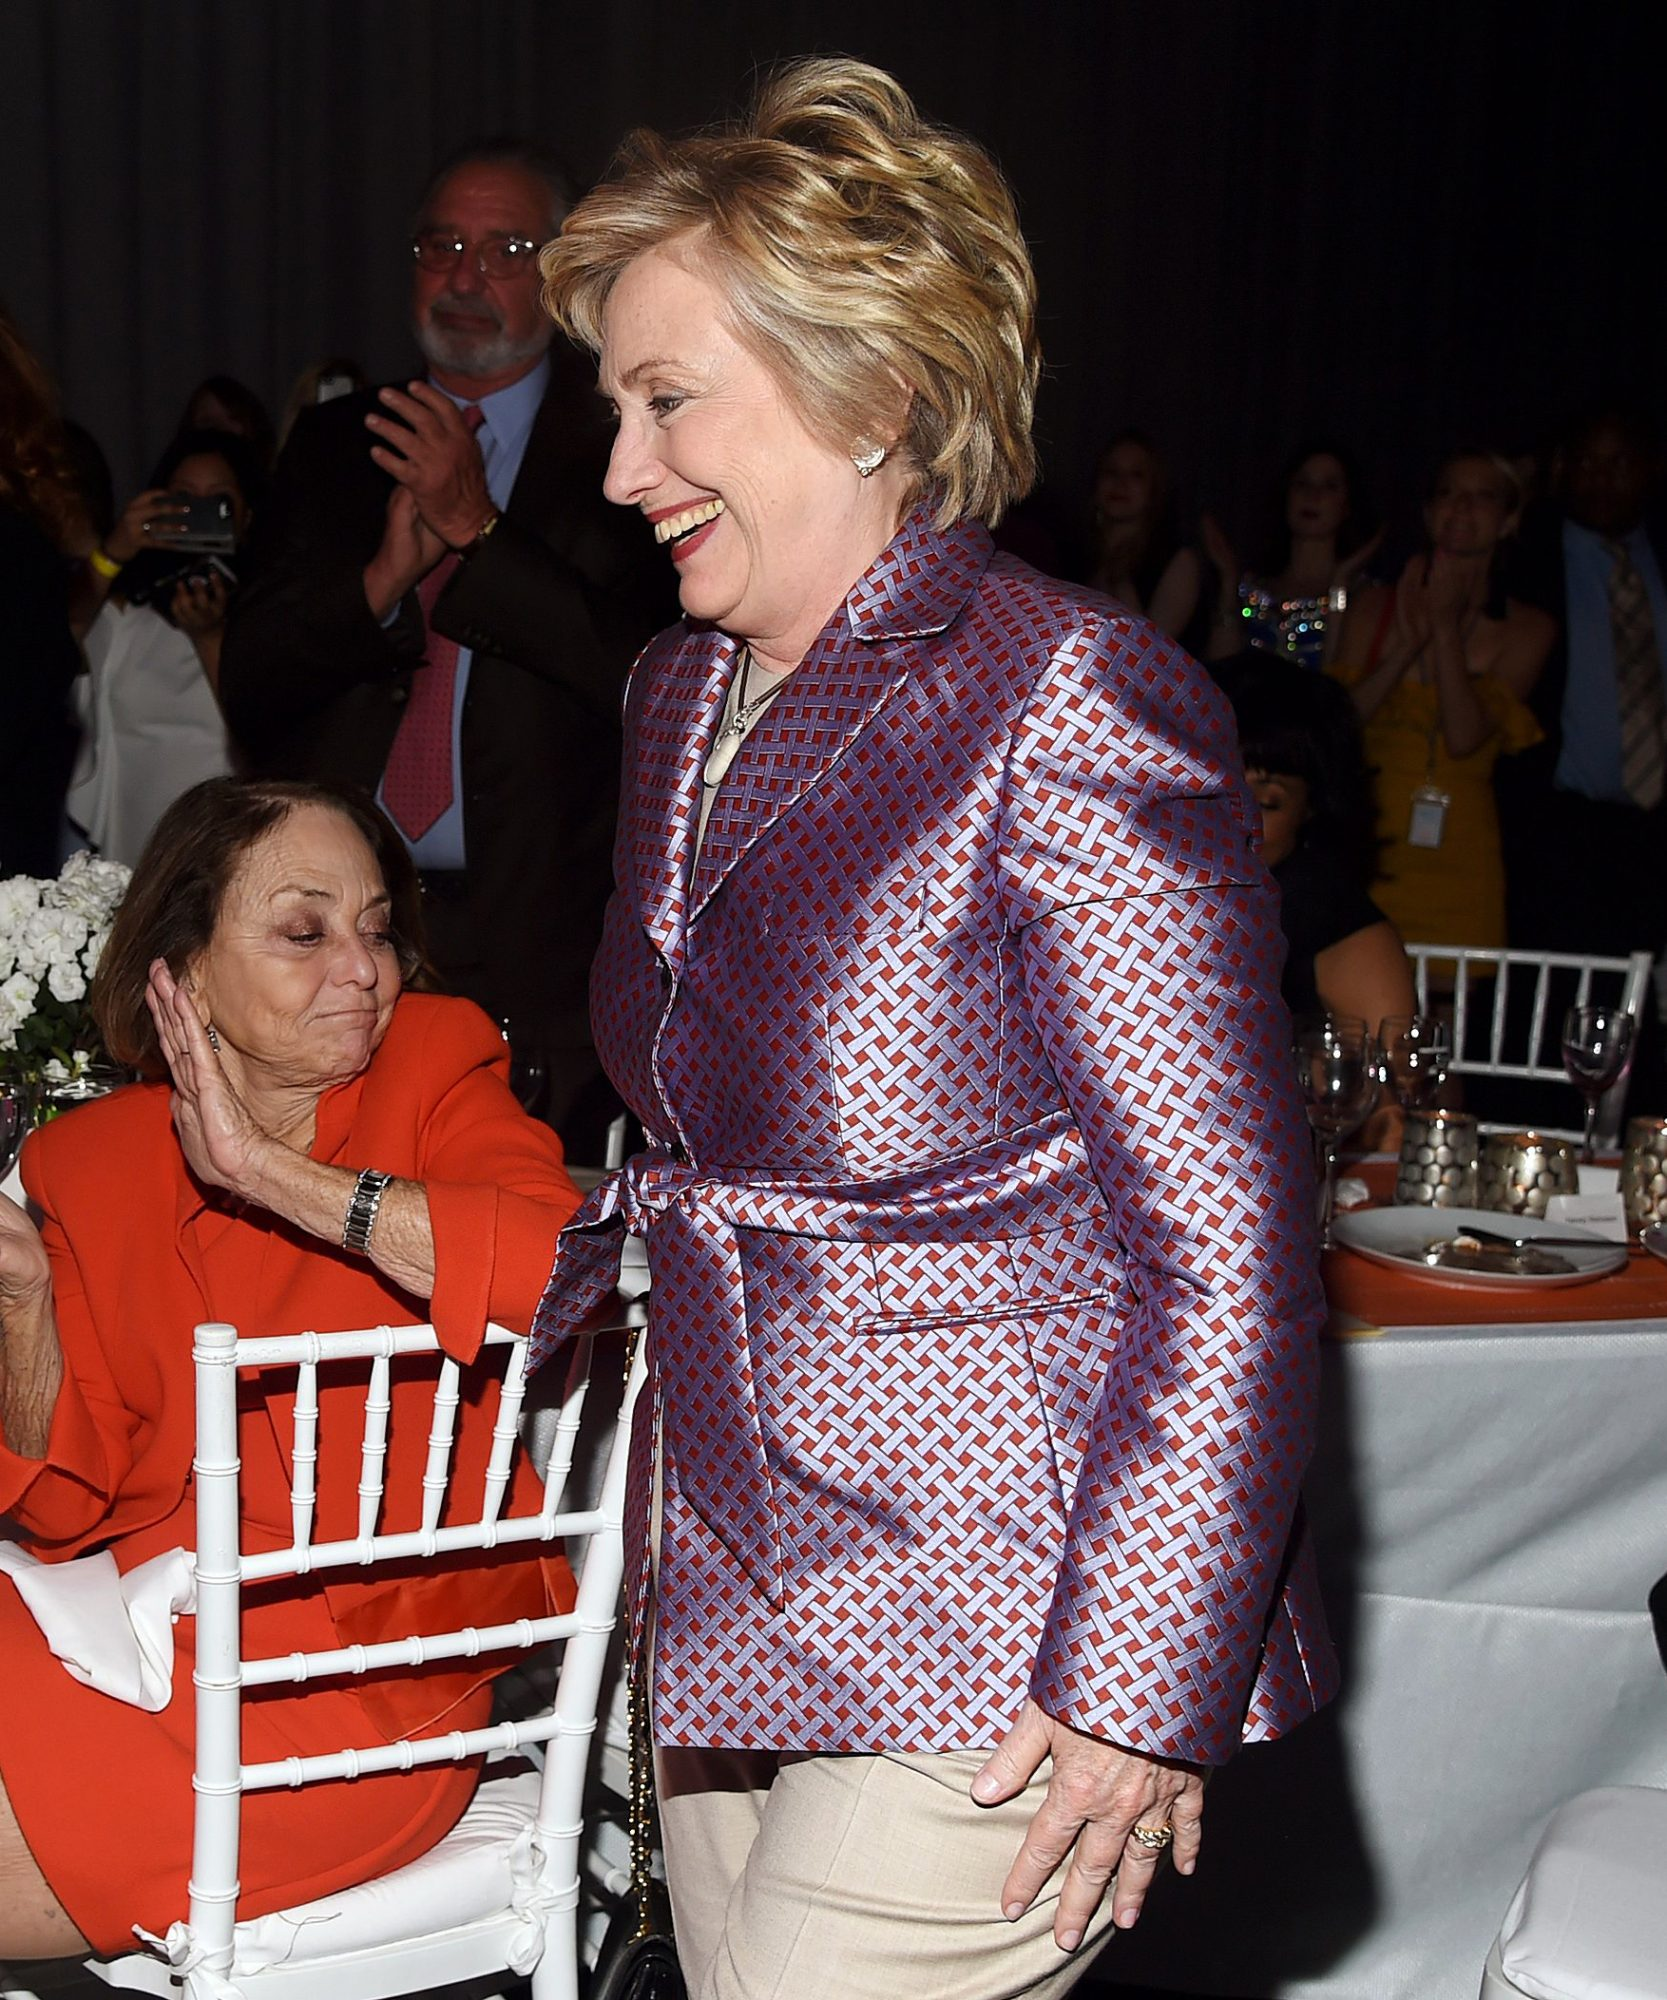 Hillary Clinton Pantsuit - Embed